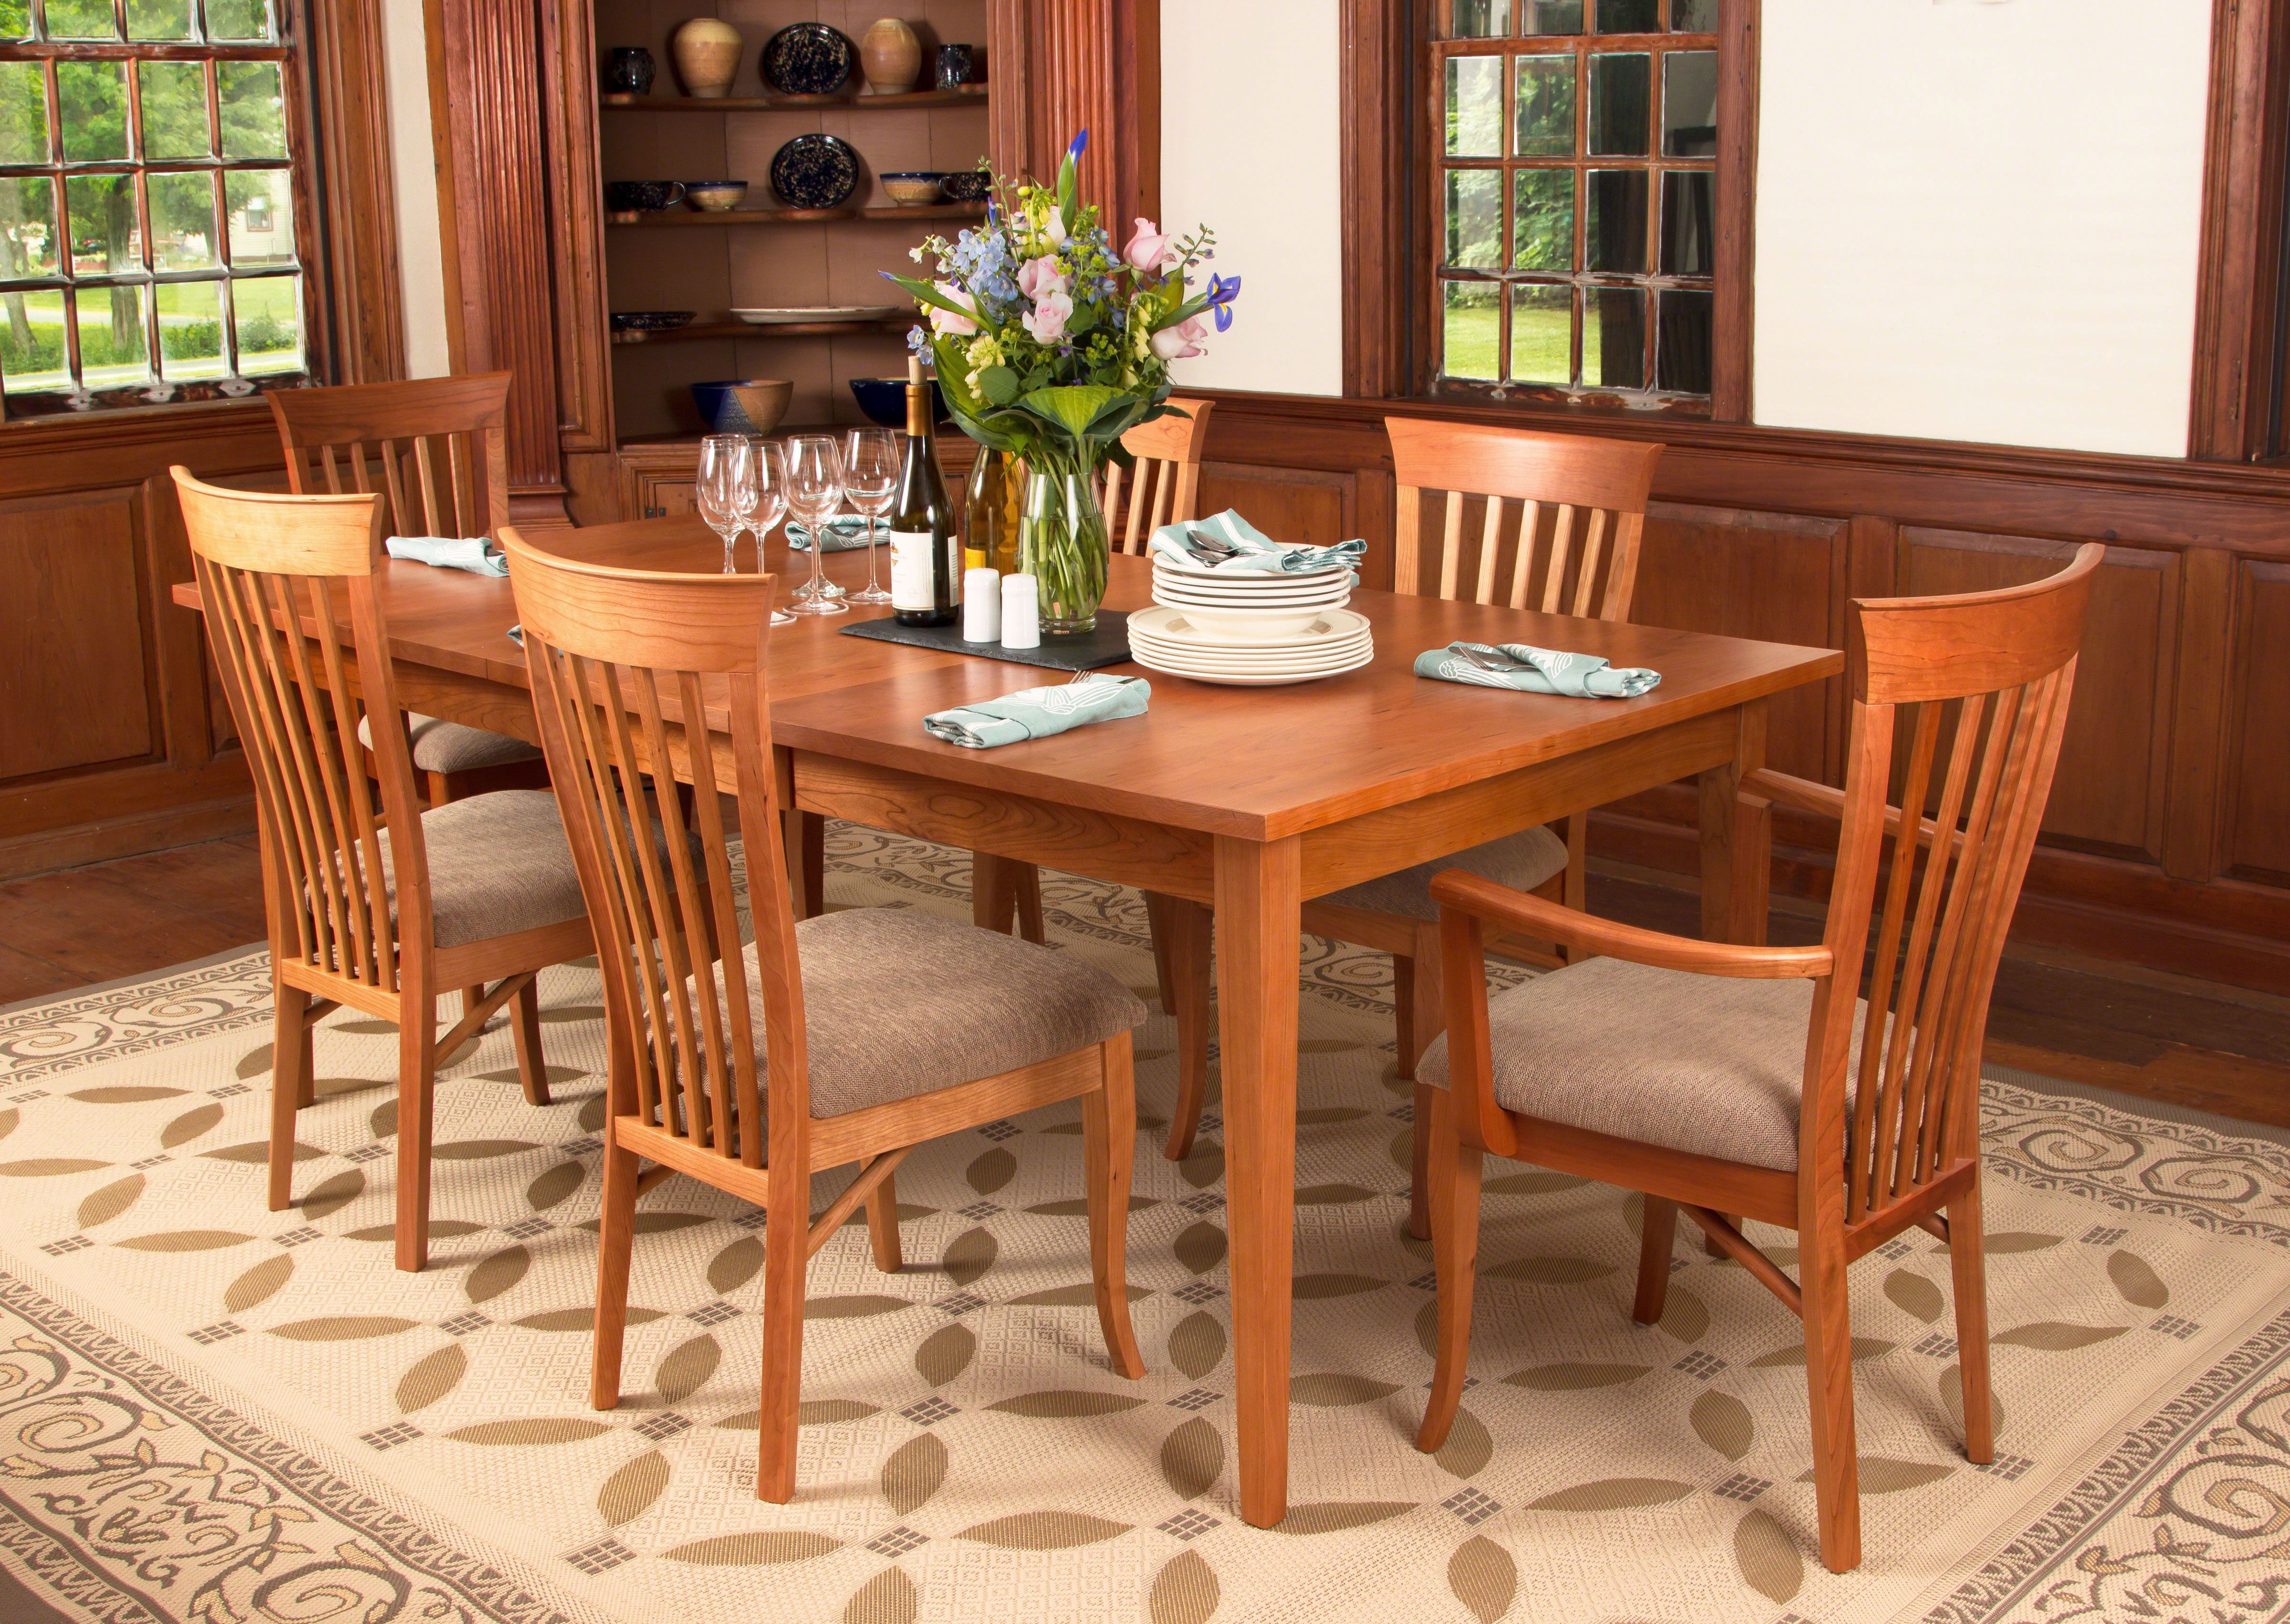 Our High End Handmade Classic Shaker Dining Table Features Clean Straight Lines And Smooth Dining Table Chairs Dining Table Design Modern Dining Table Legs